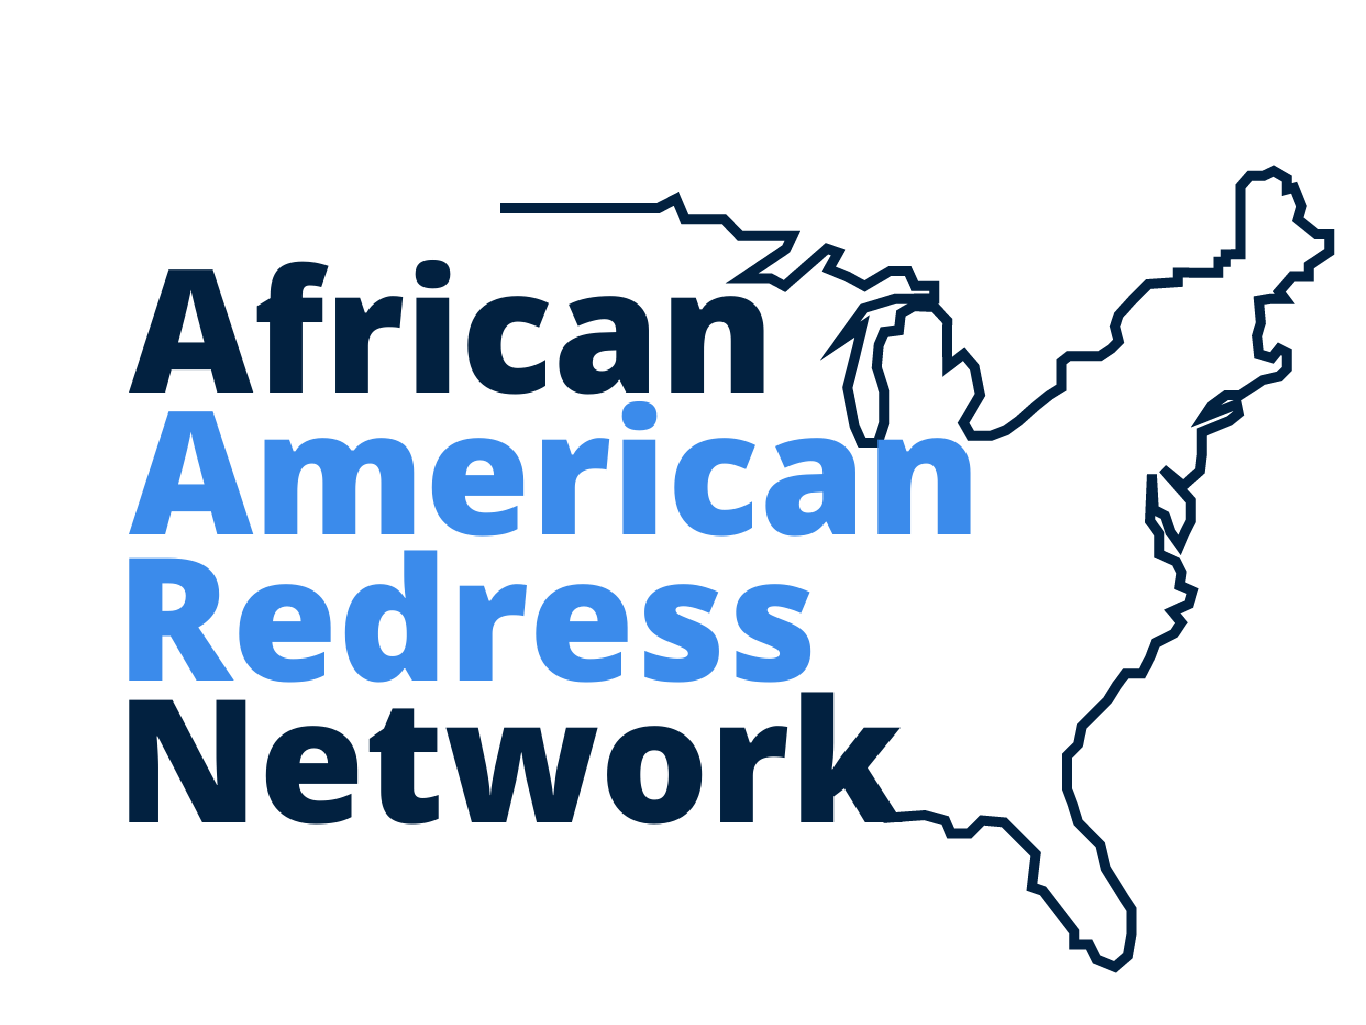 African-American Redress Network